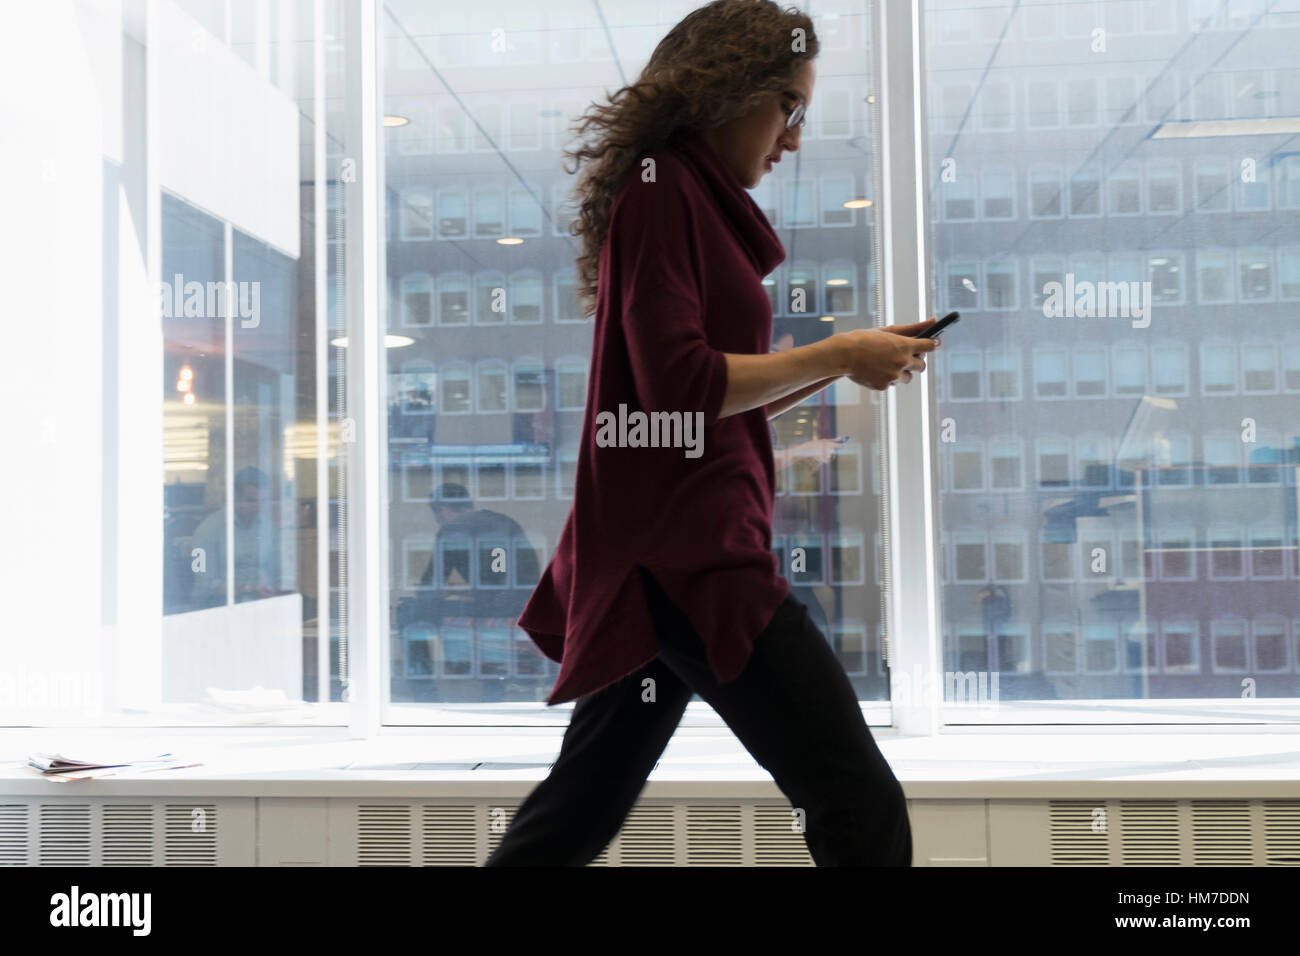 Young woman walking with mobile phone in front of window - Stock Image